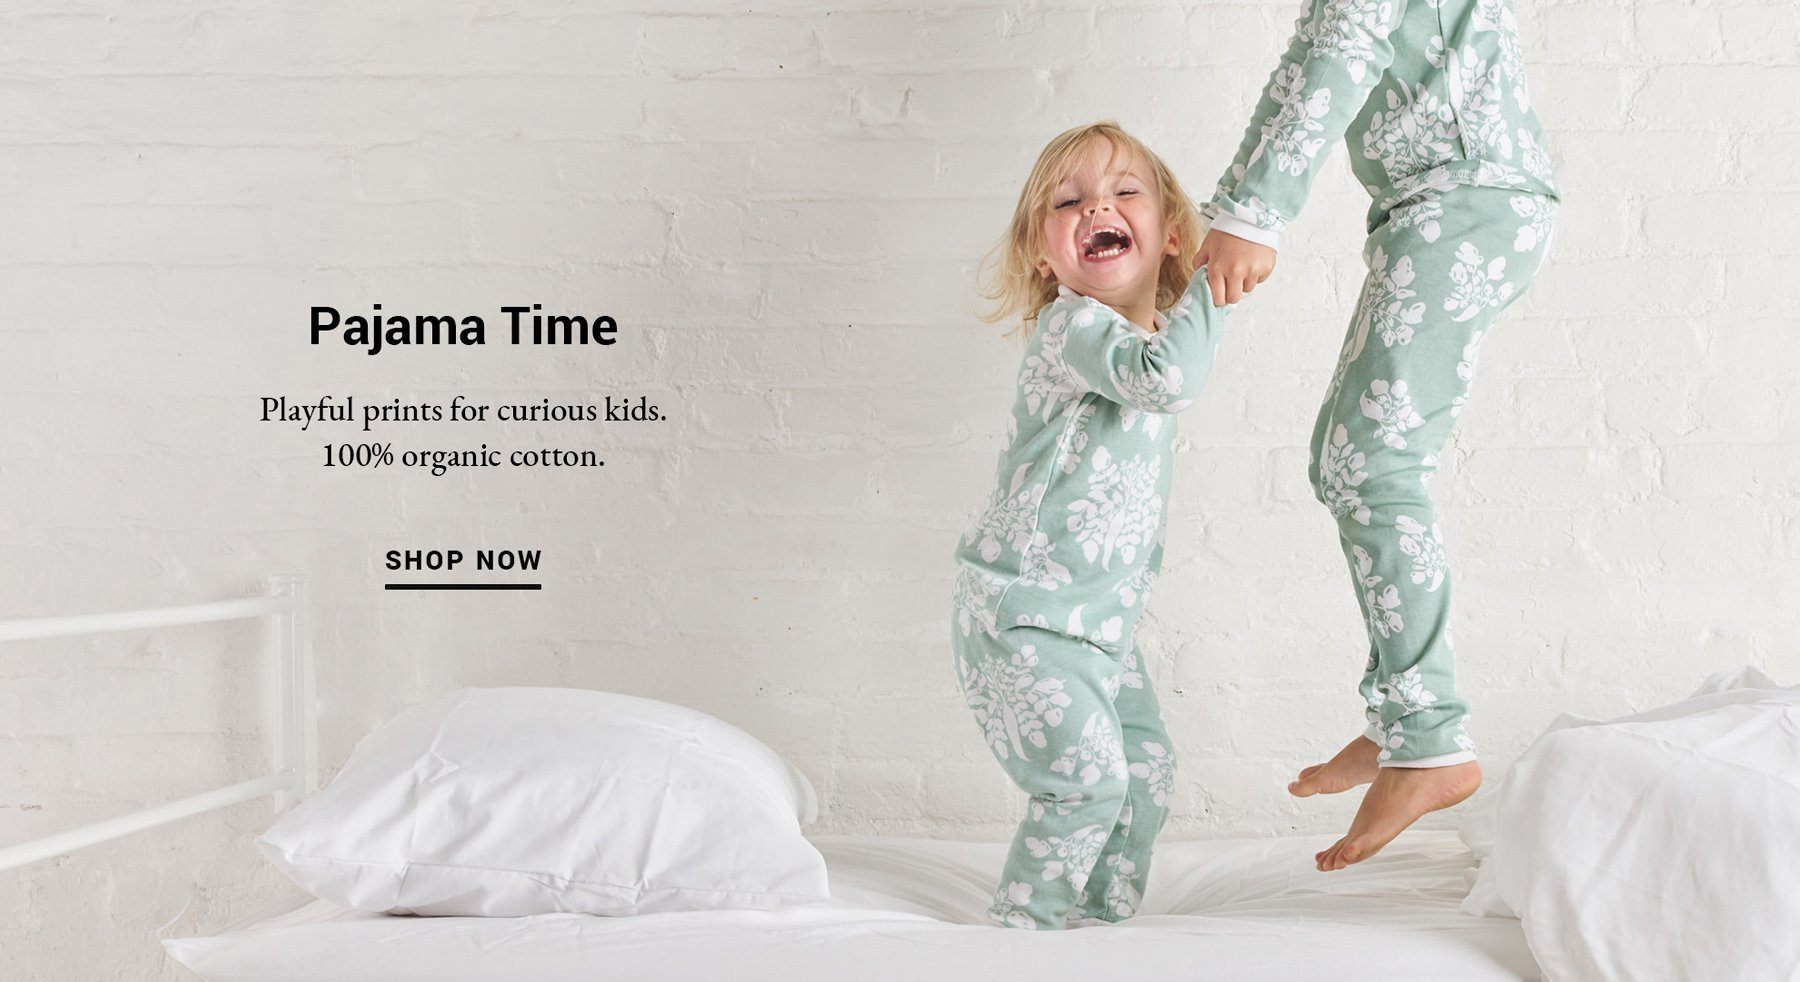 Lewis pajamas are 100% organic cotton in playful prints for curious kids.